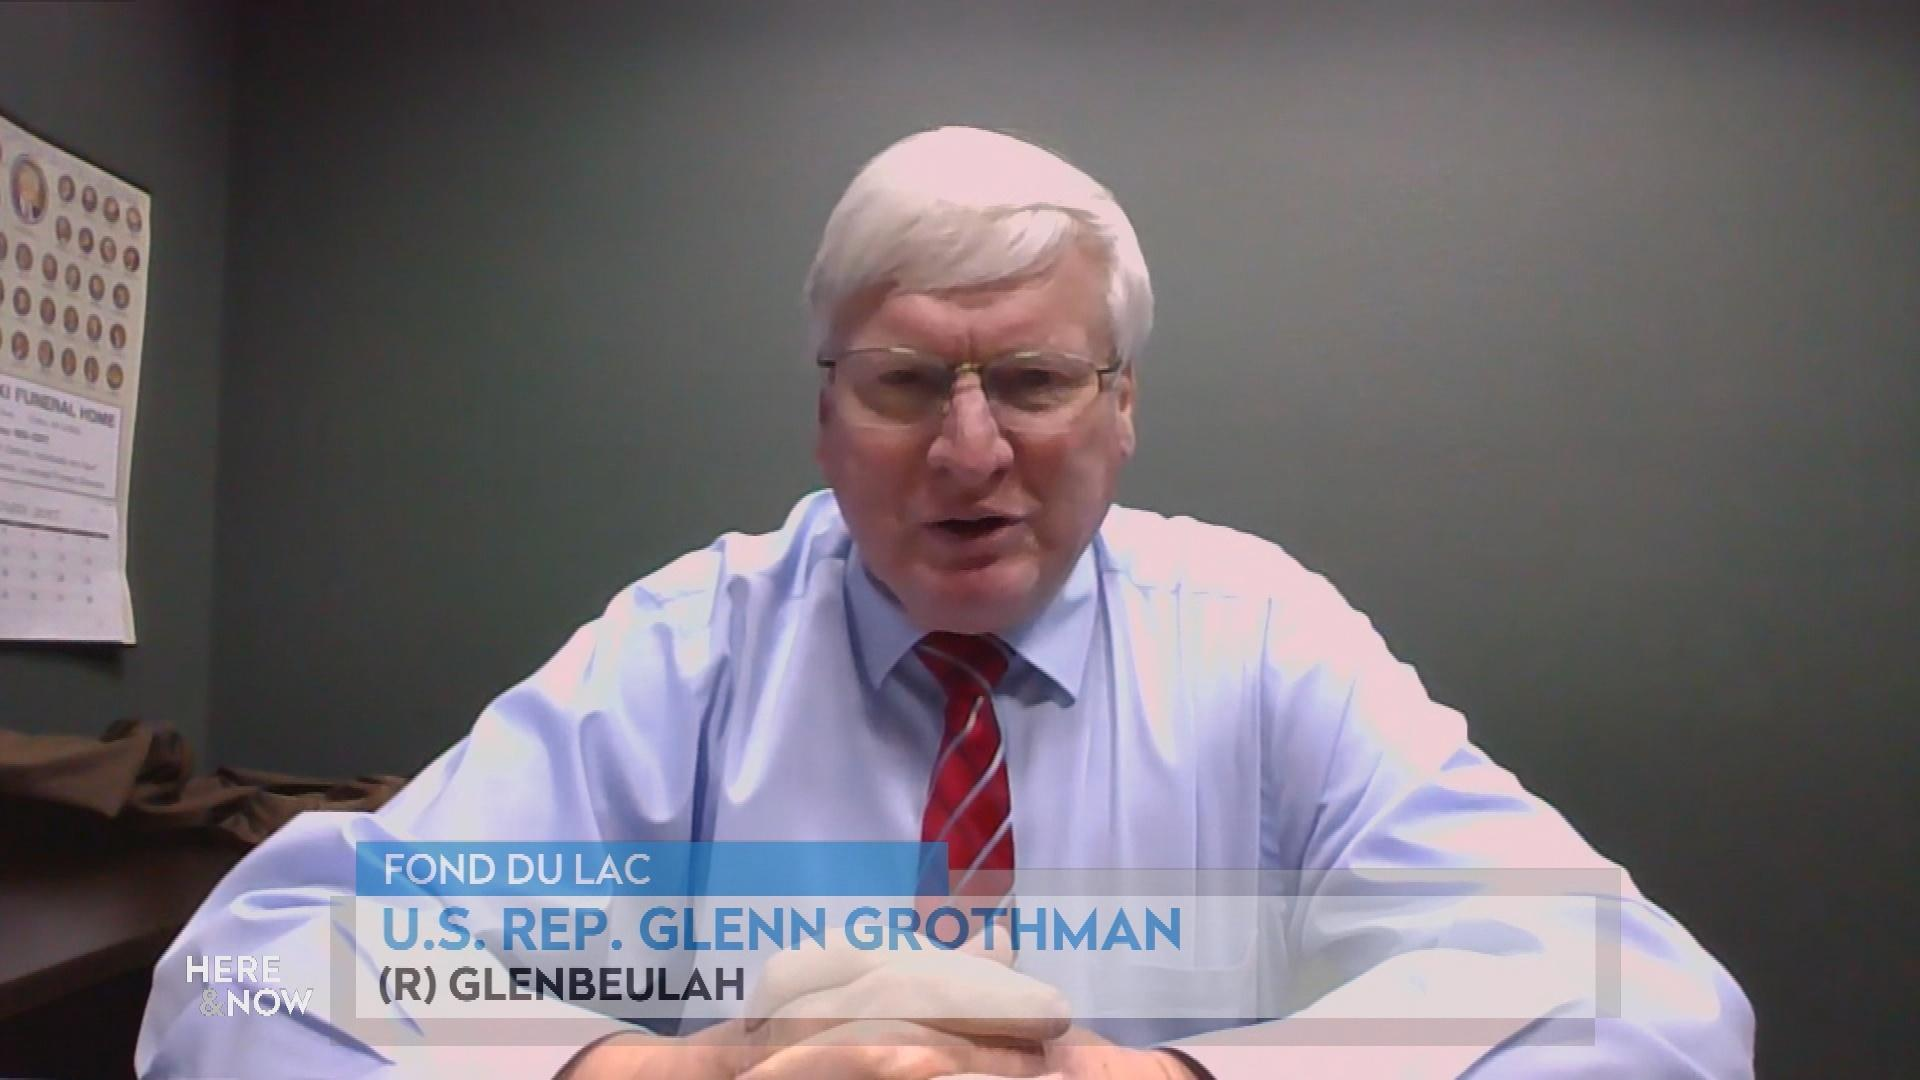 U.S. Rep. Grothman's Reaction to Calls of Removing Trump